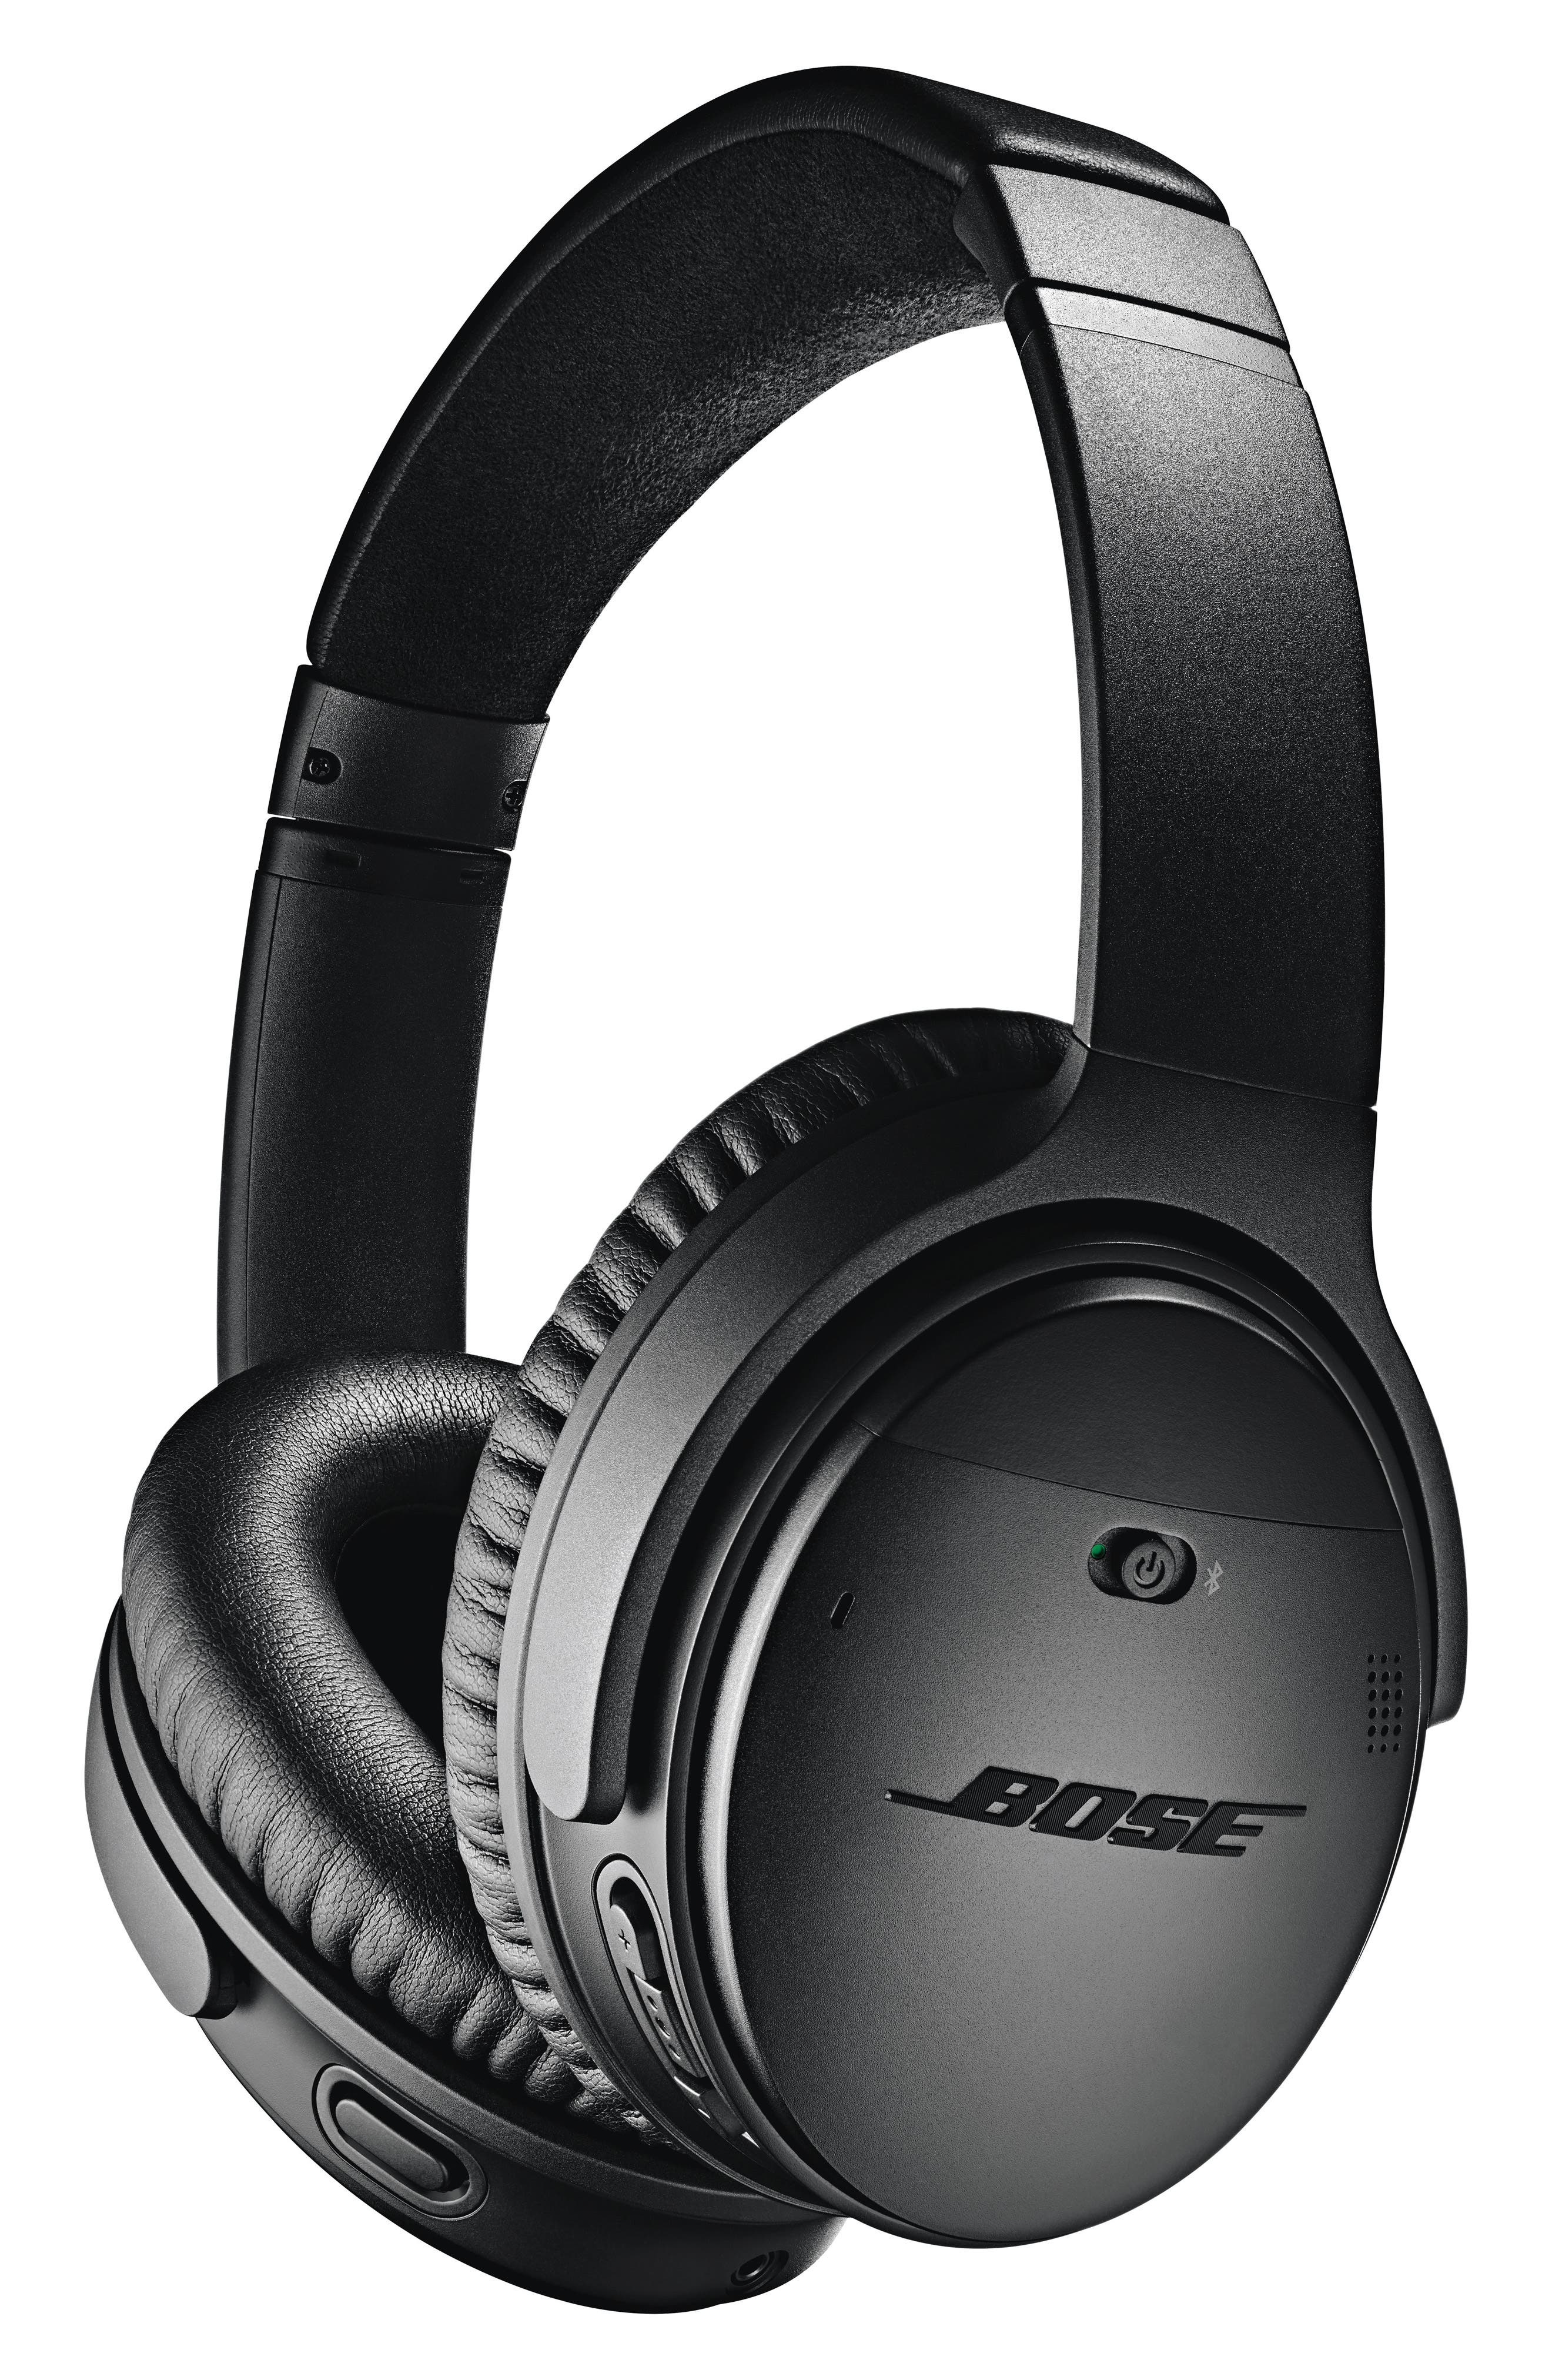 Eliminate noise and distraction with premium wireless headphones featuring a cushioned design and built-in Google Assistant for comfortable, hands-free use. Headphone style: Over-ear, with cushioned synthetic protein ear pads and TriPort acoustic structure to project lifelike sound and reveal musical nuancesIncludes: Storage case, battery, USB cable and audio cable for wired connectionWireless connectivity: Compatible with any Bluetooth